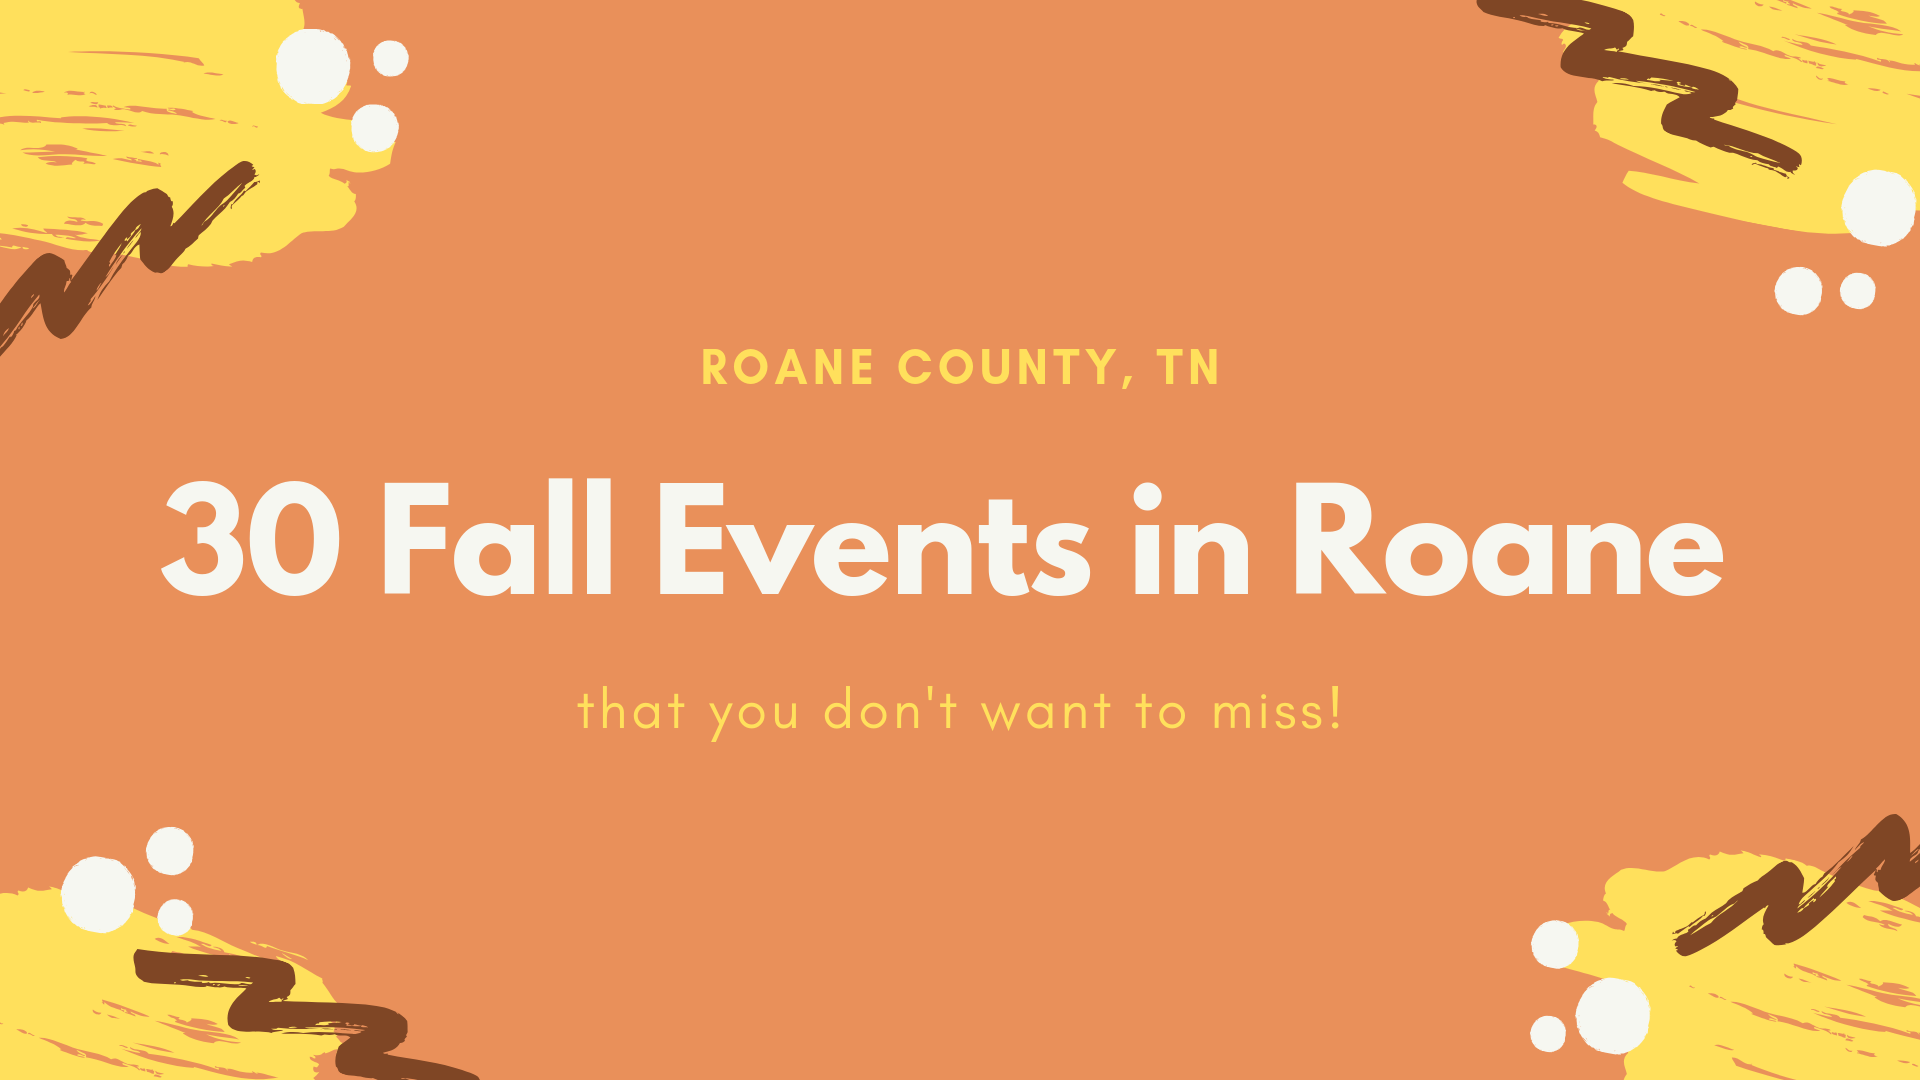 30 Fall Events in Roane